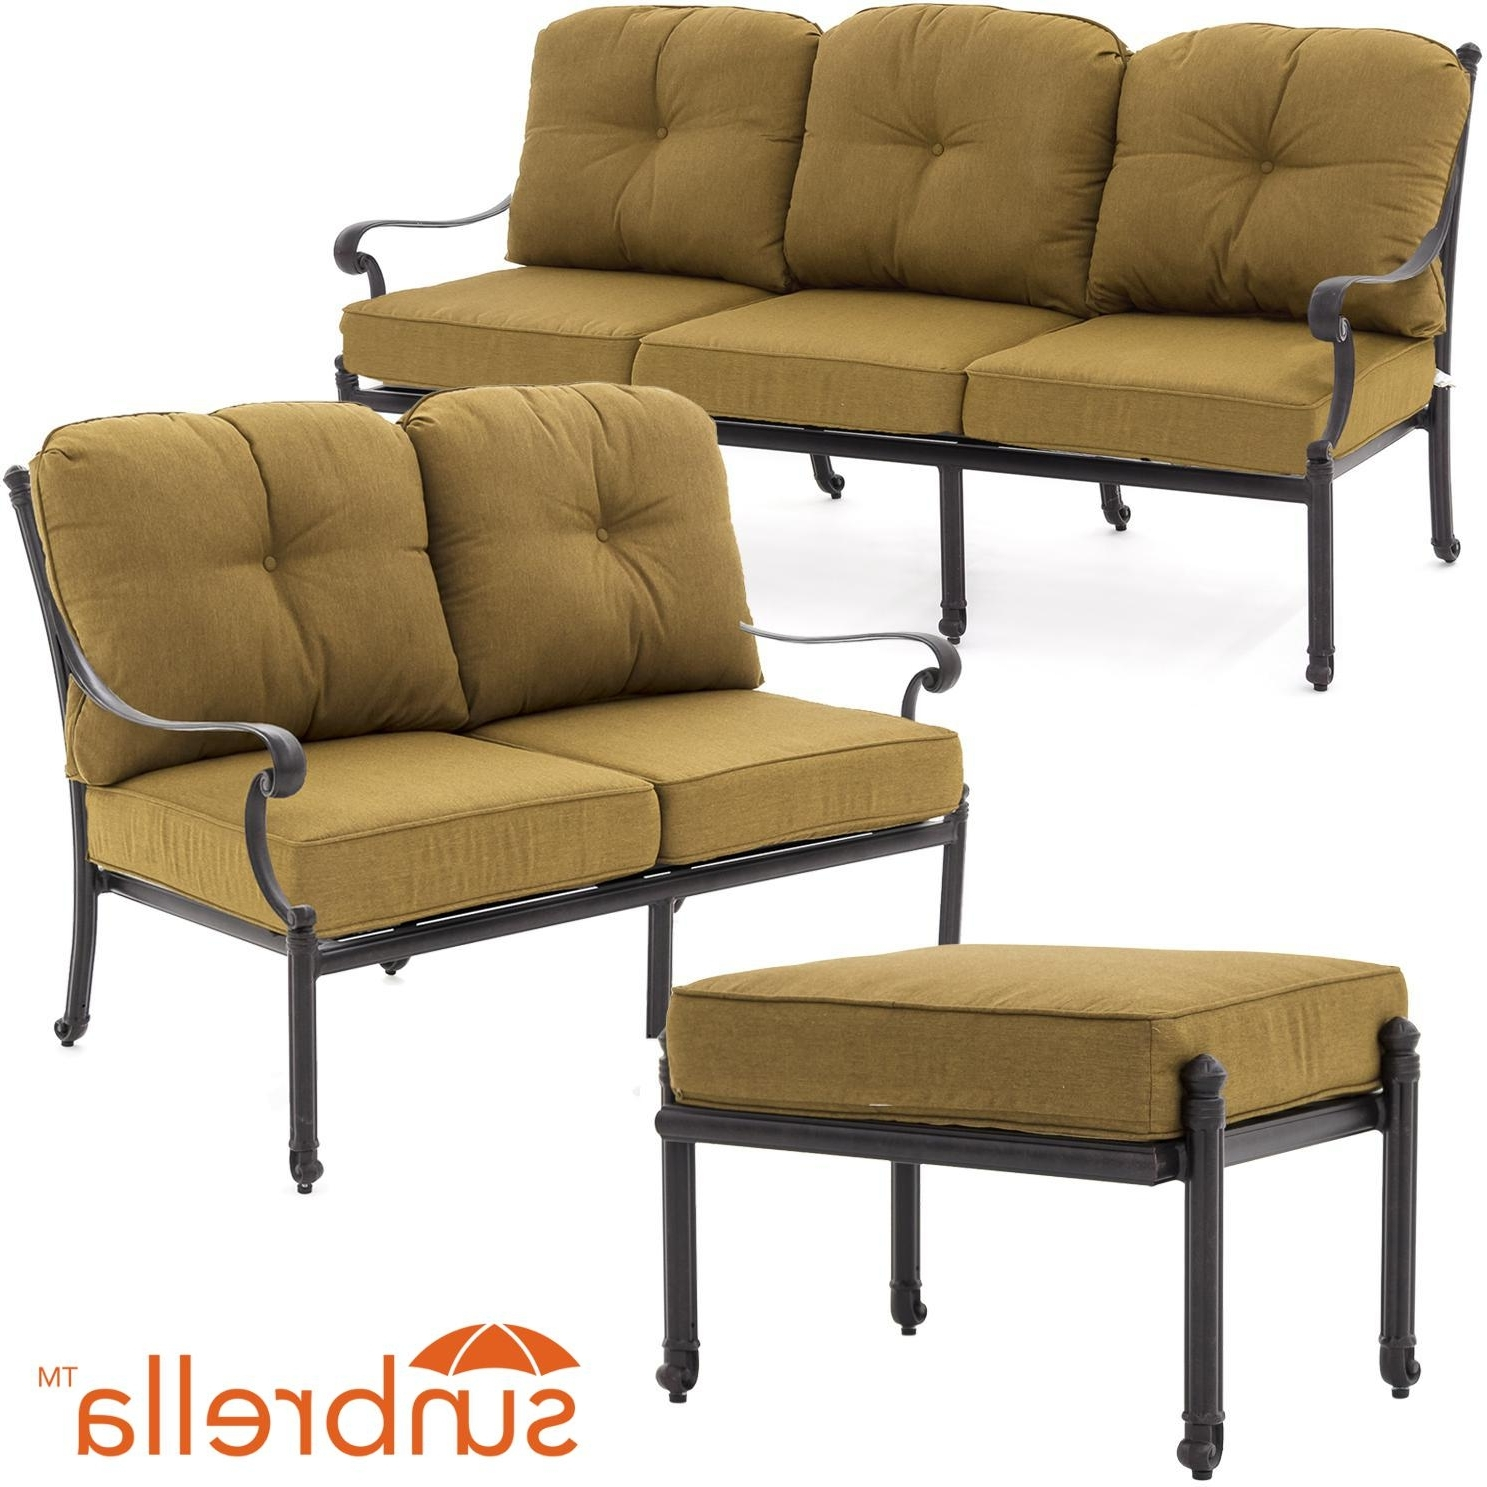 Patio Conversation Sets With Sunbrella Cushions Intended For Widely Used Evangeline 3 Piece Cast Aluminum Outdoor Conversation Set W (View 10 of 15)